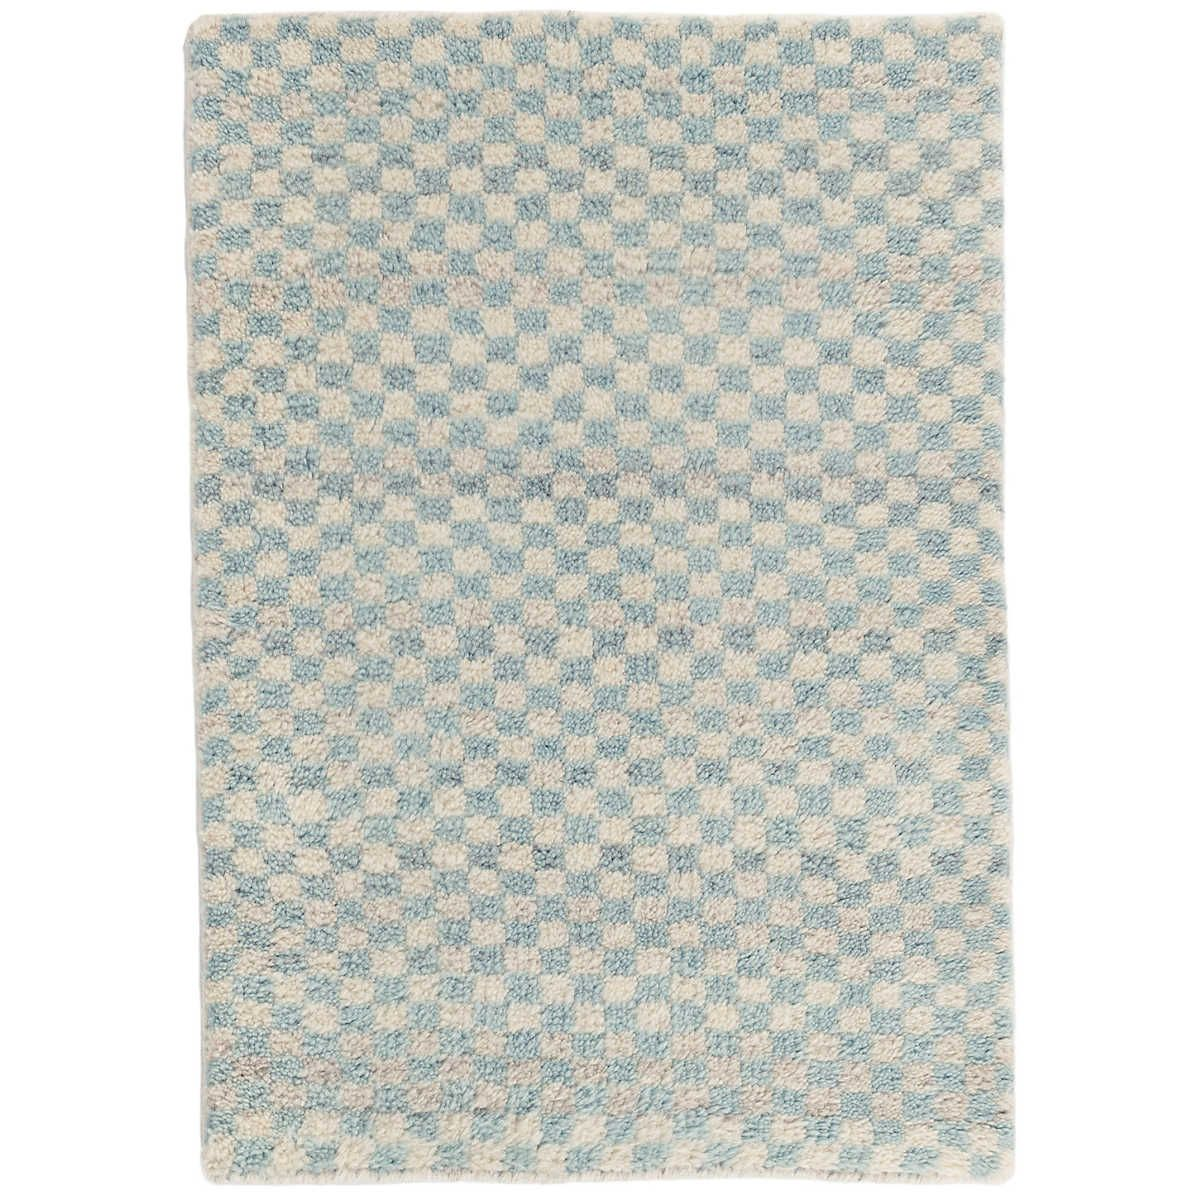 Citra Robin S Egg Blue Hand Knotted Wool Rug The Outlet Wool Rug Rug Shopping Wool Area Rugs